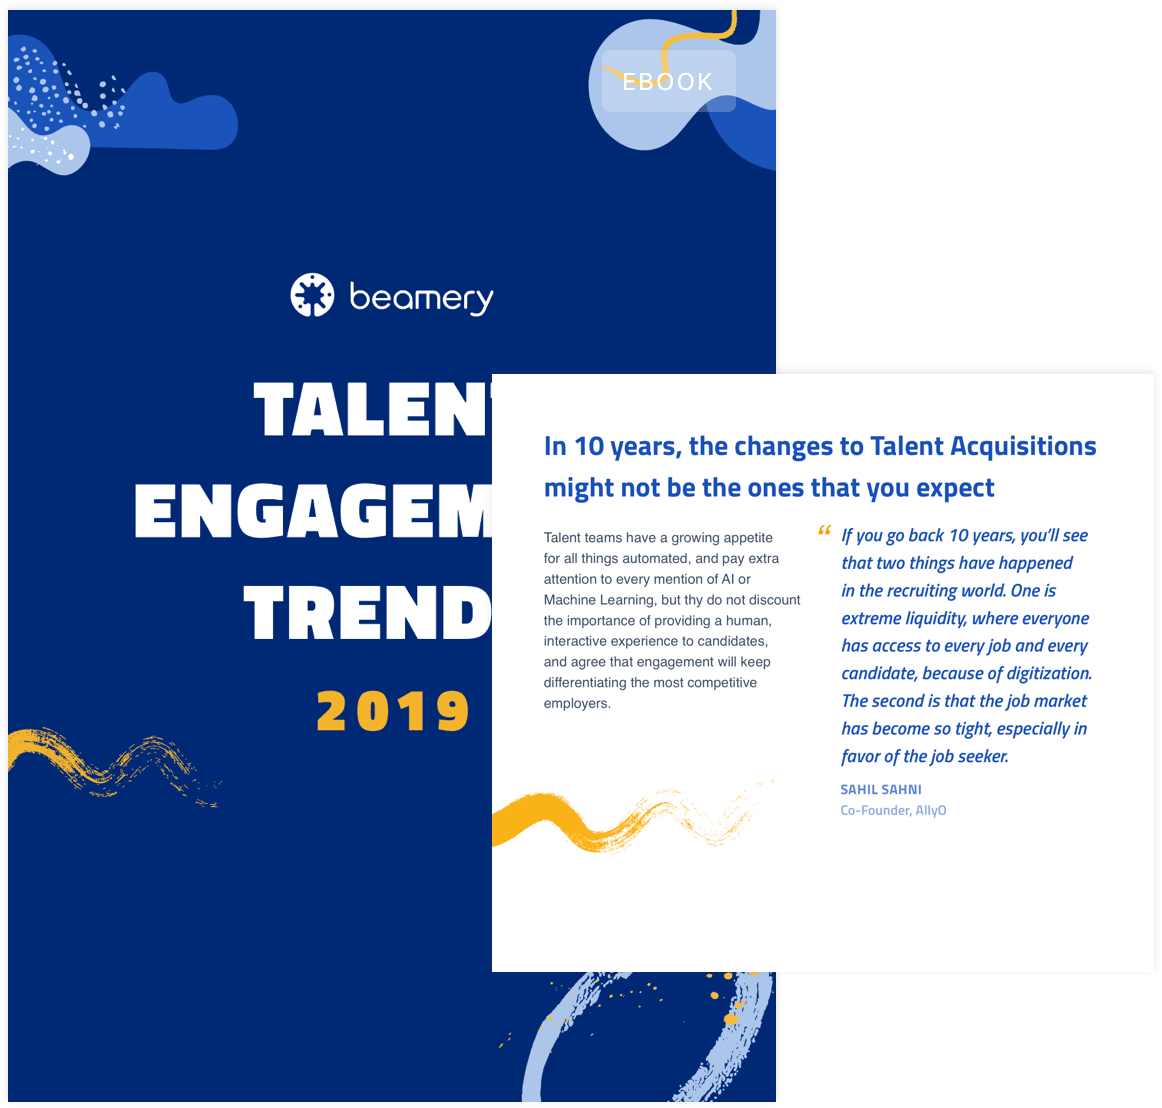 Talent Engagement Trends 2019